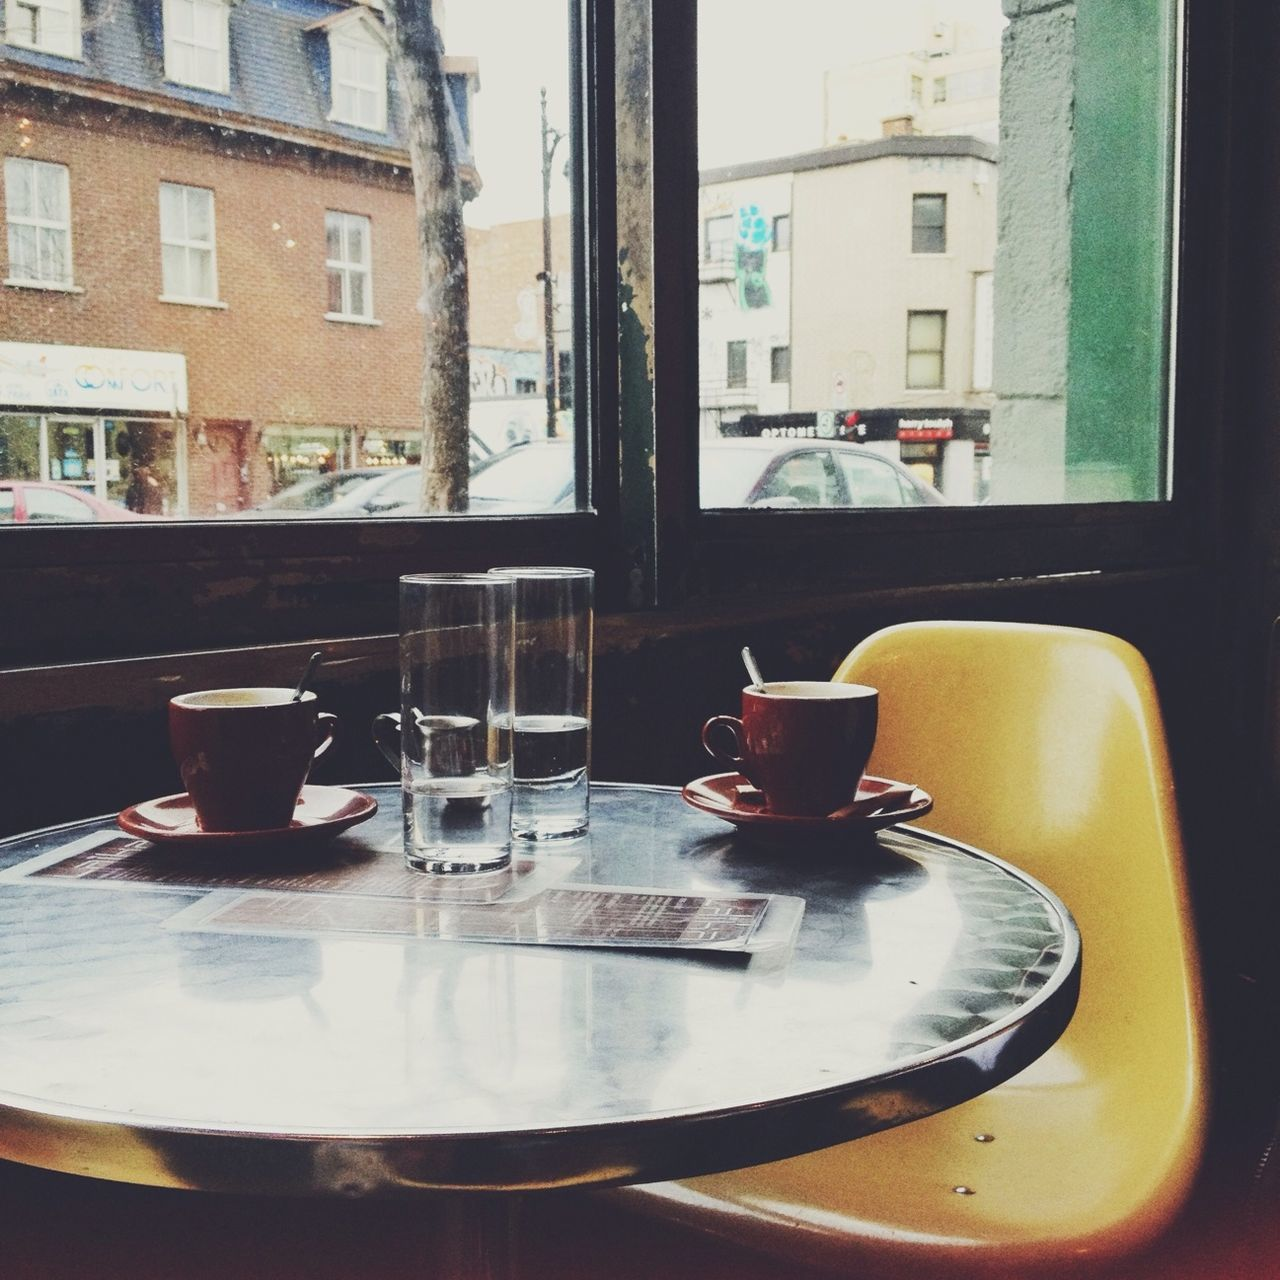 Glasses And Coffee Cups On Table In Restaurant